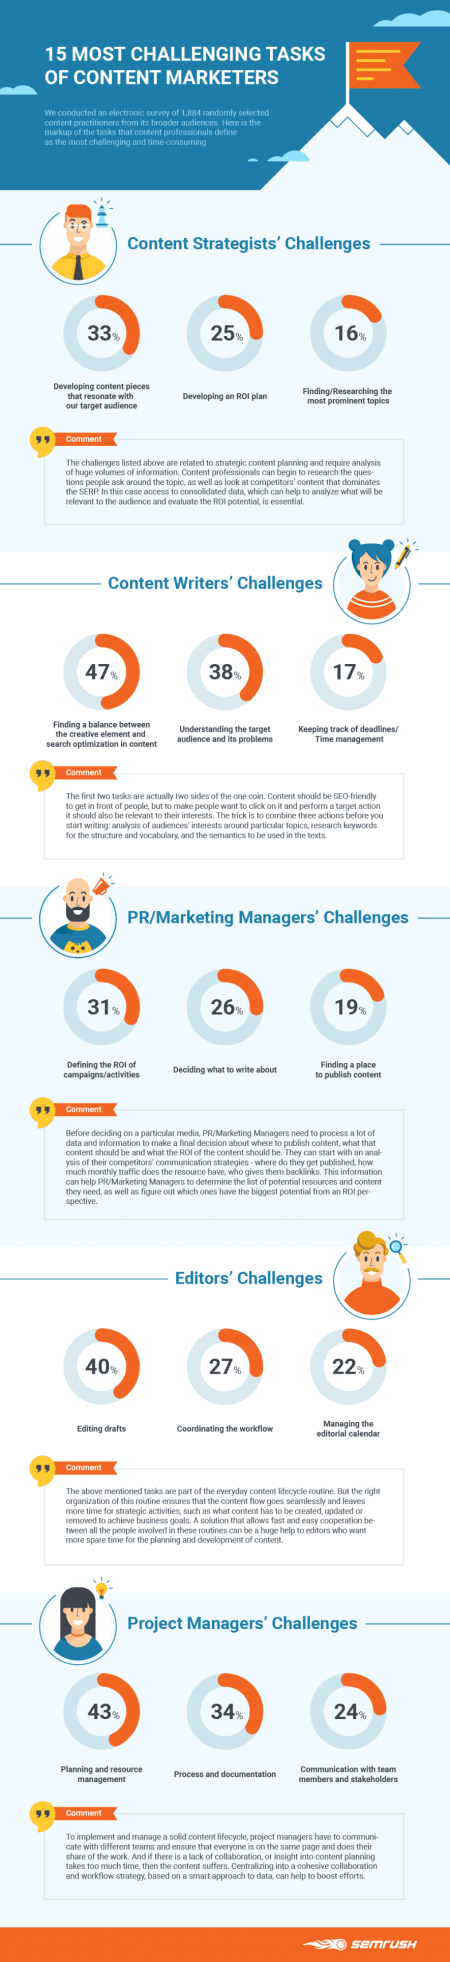 Infographic – 15 Most Challenging Tasks of Content Marketers